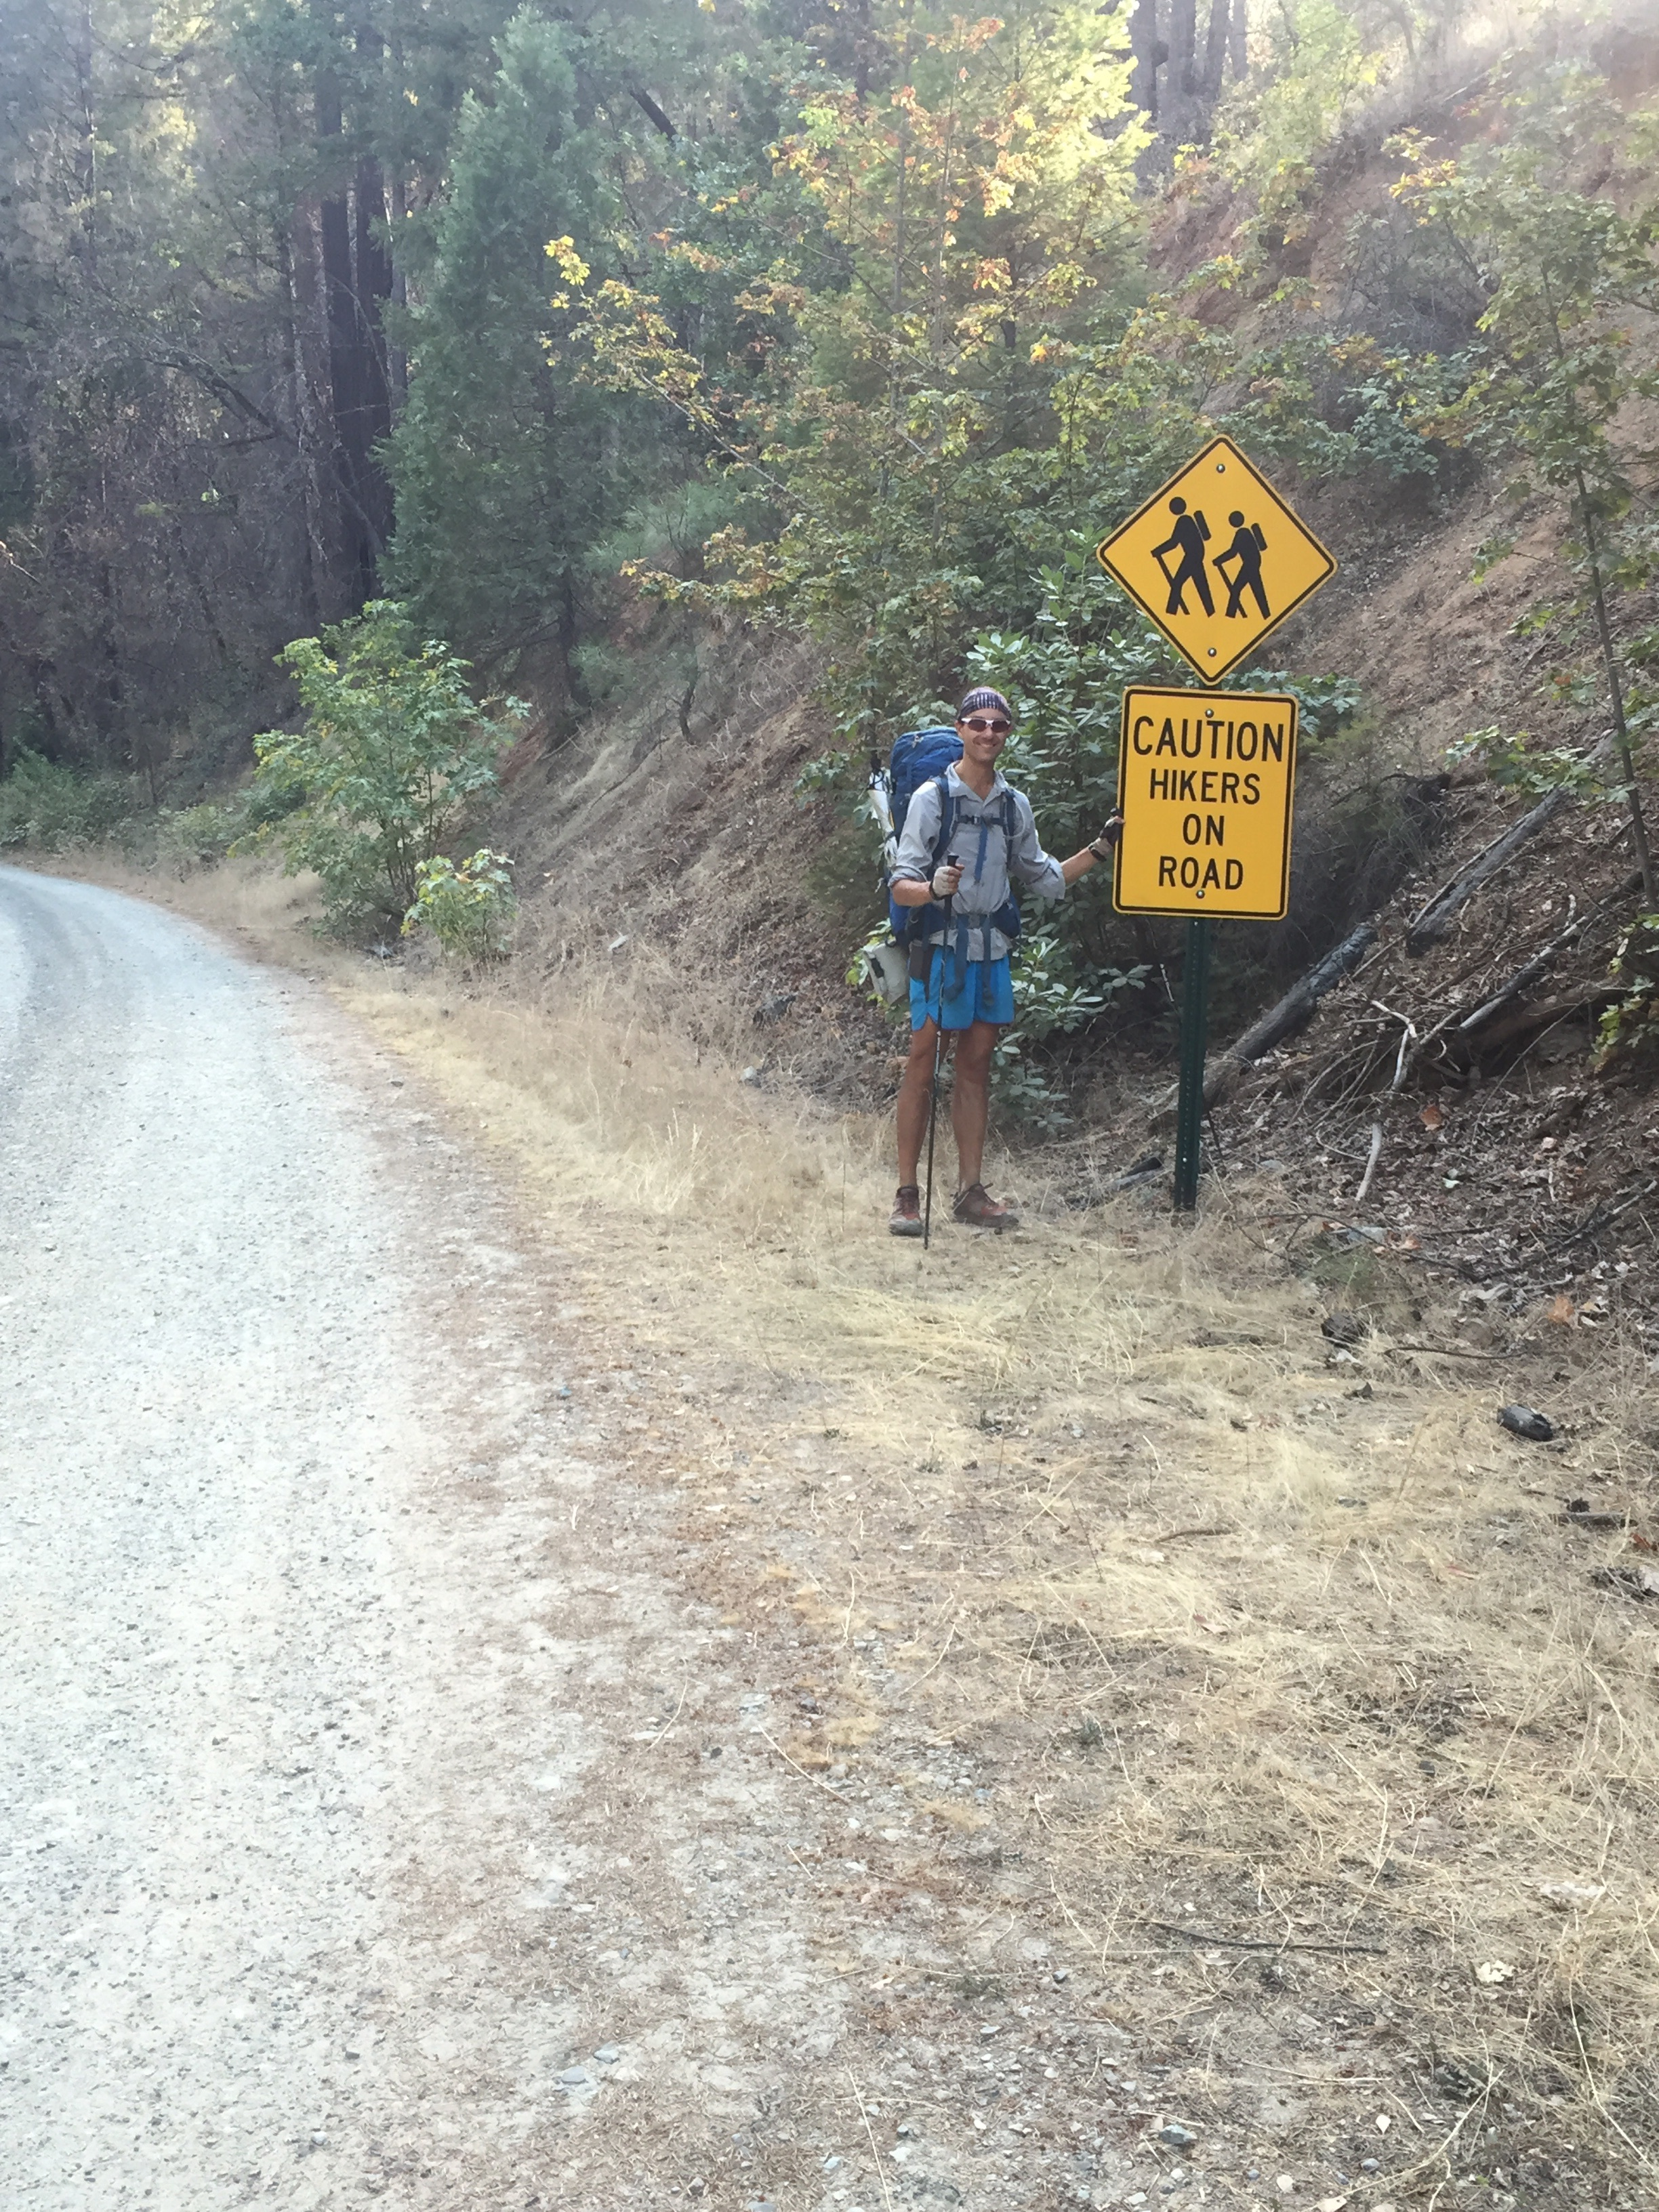 We finally found one small kindness towards hikers several miles up the now-gravel road